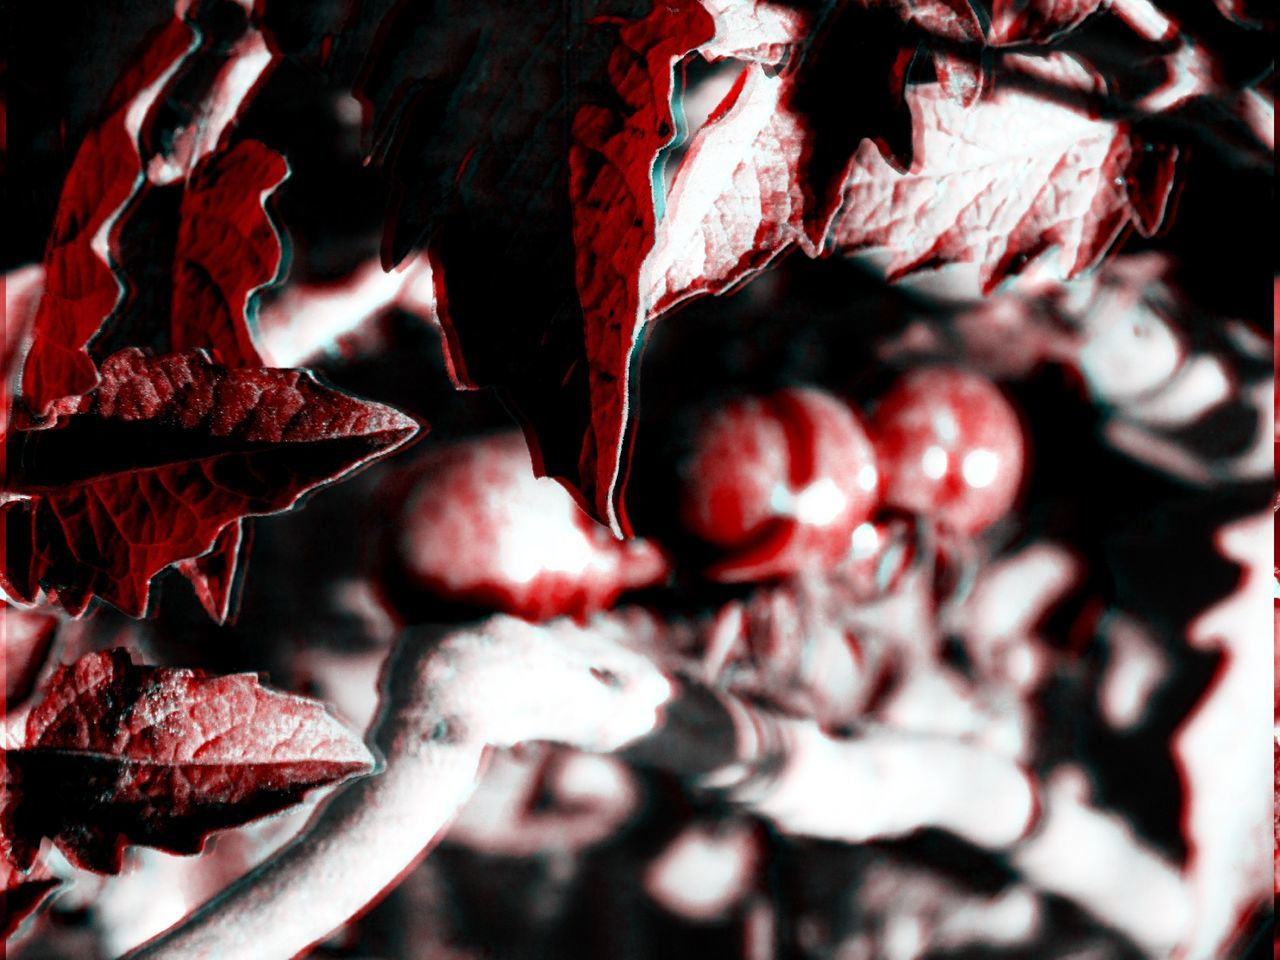 Life goes on!! (Collection) 3D Art 3d Collection 3D Composition 3D Effect 3D Photo 3Dart Backgrounds Beauty In Nature Black Black & White Black And White Blakck And White Blue Close-up Fragility Freshness Leaves Nature No People Outdoors Outdoos Red Red Tomatoes White